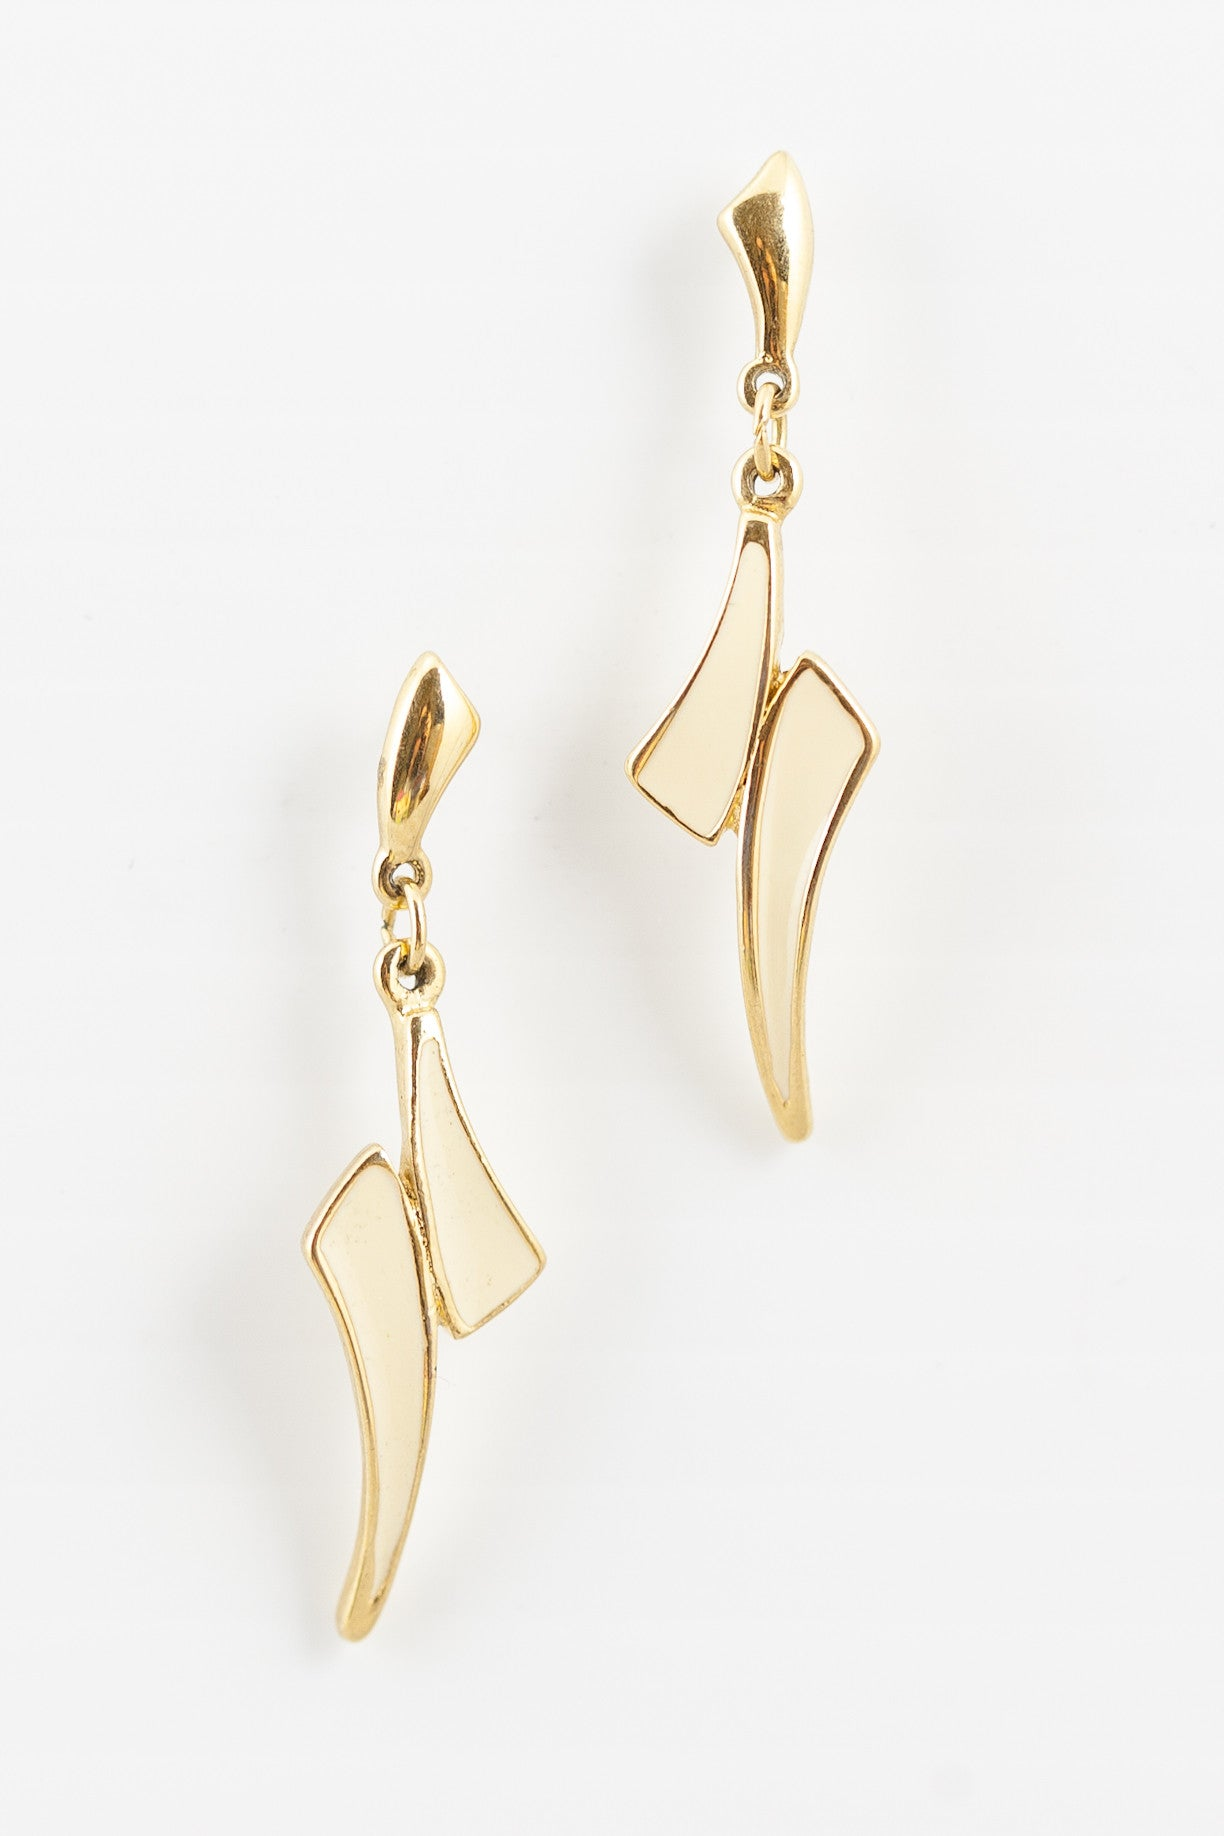 70's__Trifari__Cream & Gold Dangle Earrings